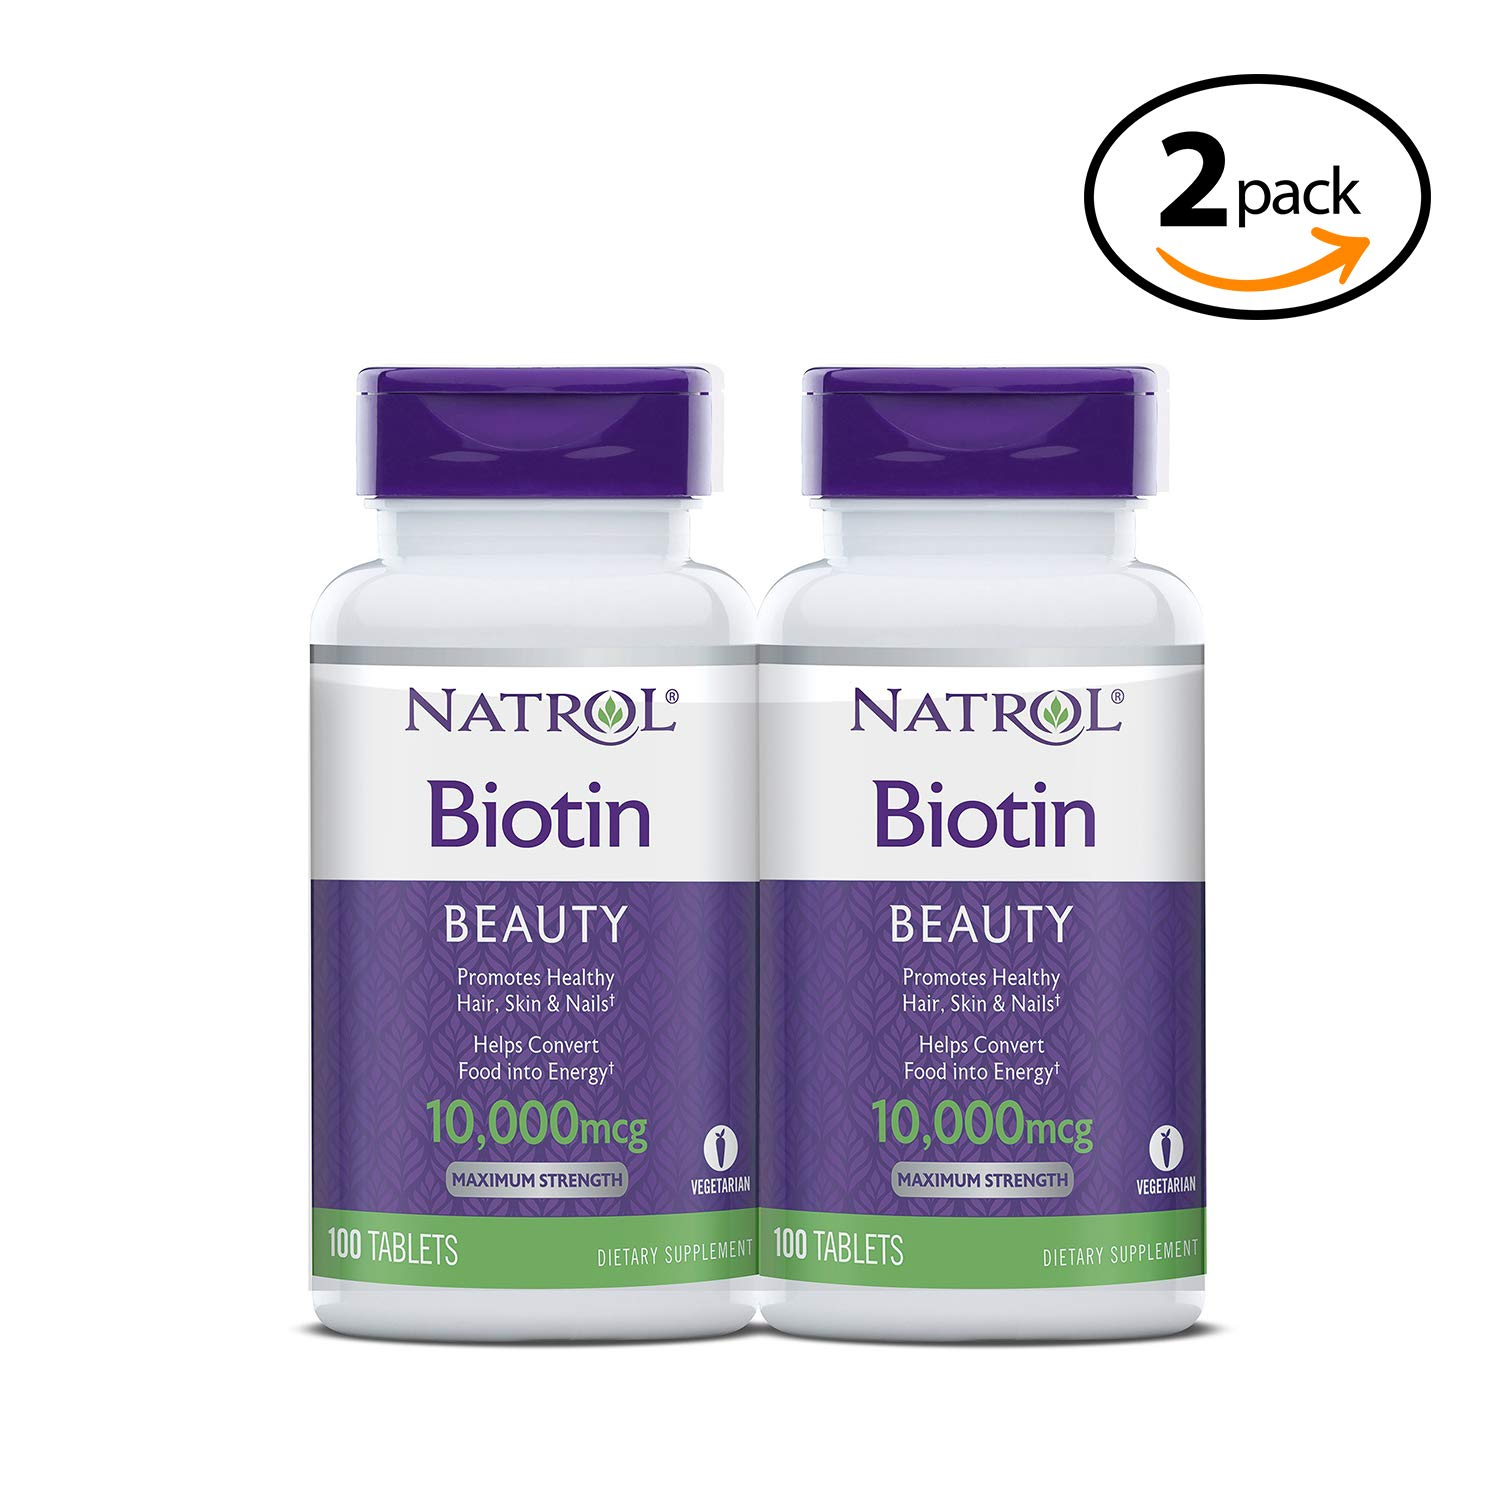 Biotin Beauty Tablets, Promotes Healthy Hair, Skin and Nails, Helps Support Energy Metabolism, Helps Convert Food Into Energy, Maximum Strength, 10,000mcg, 100 Count (Pack of 2) 2-Pack by Natrol